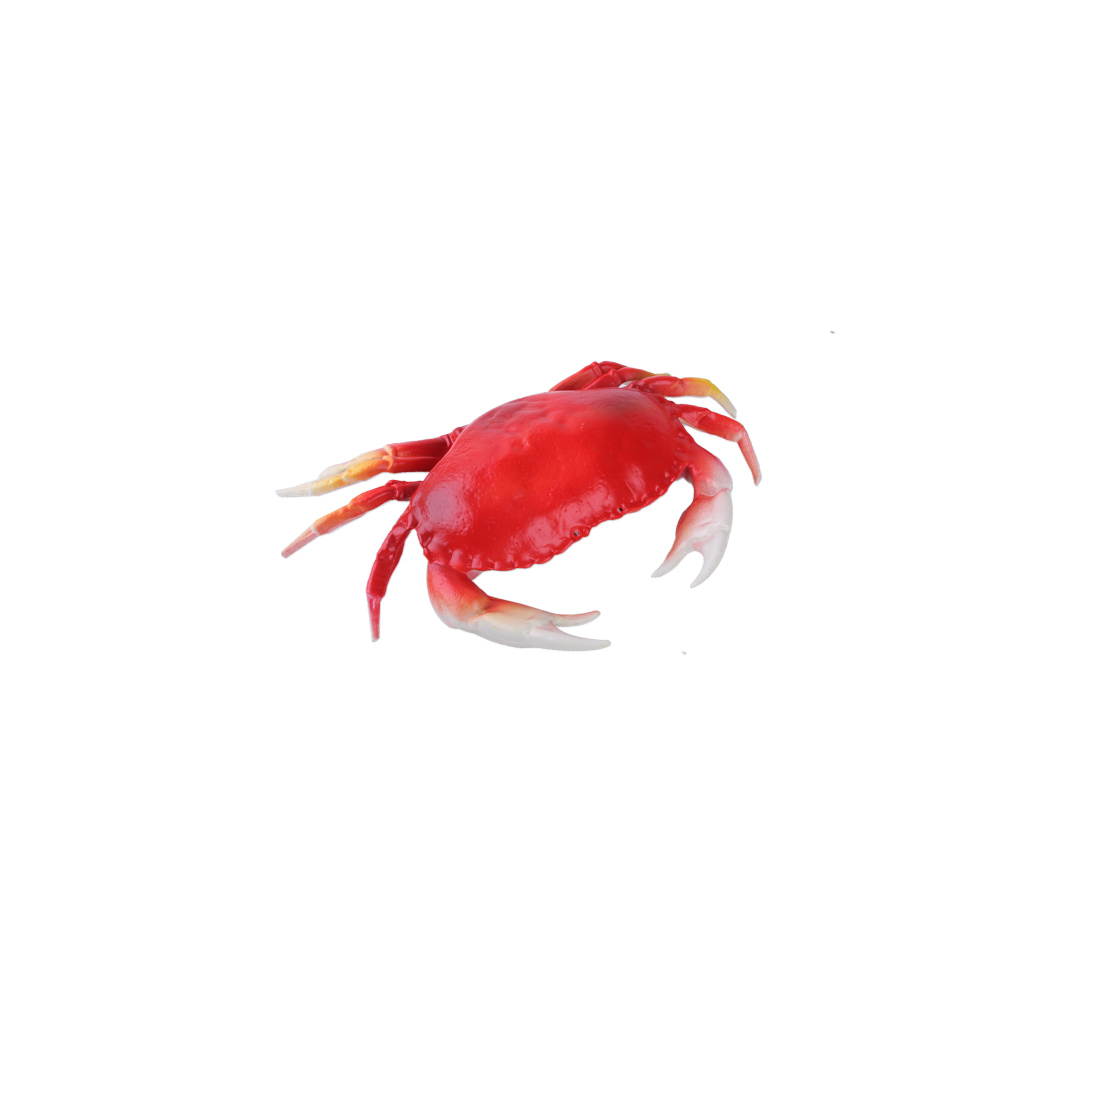 Fake-Artificial-Plastic-Crab-Lobster-School-Taxidermy-Home-Decor-Gift-Party